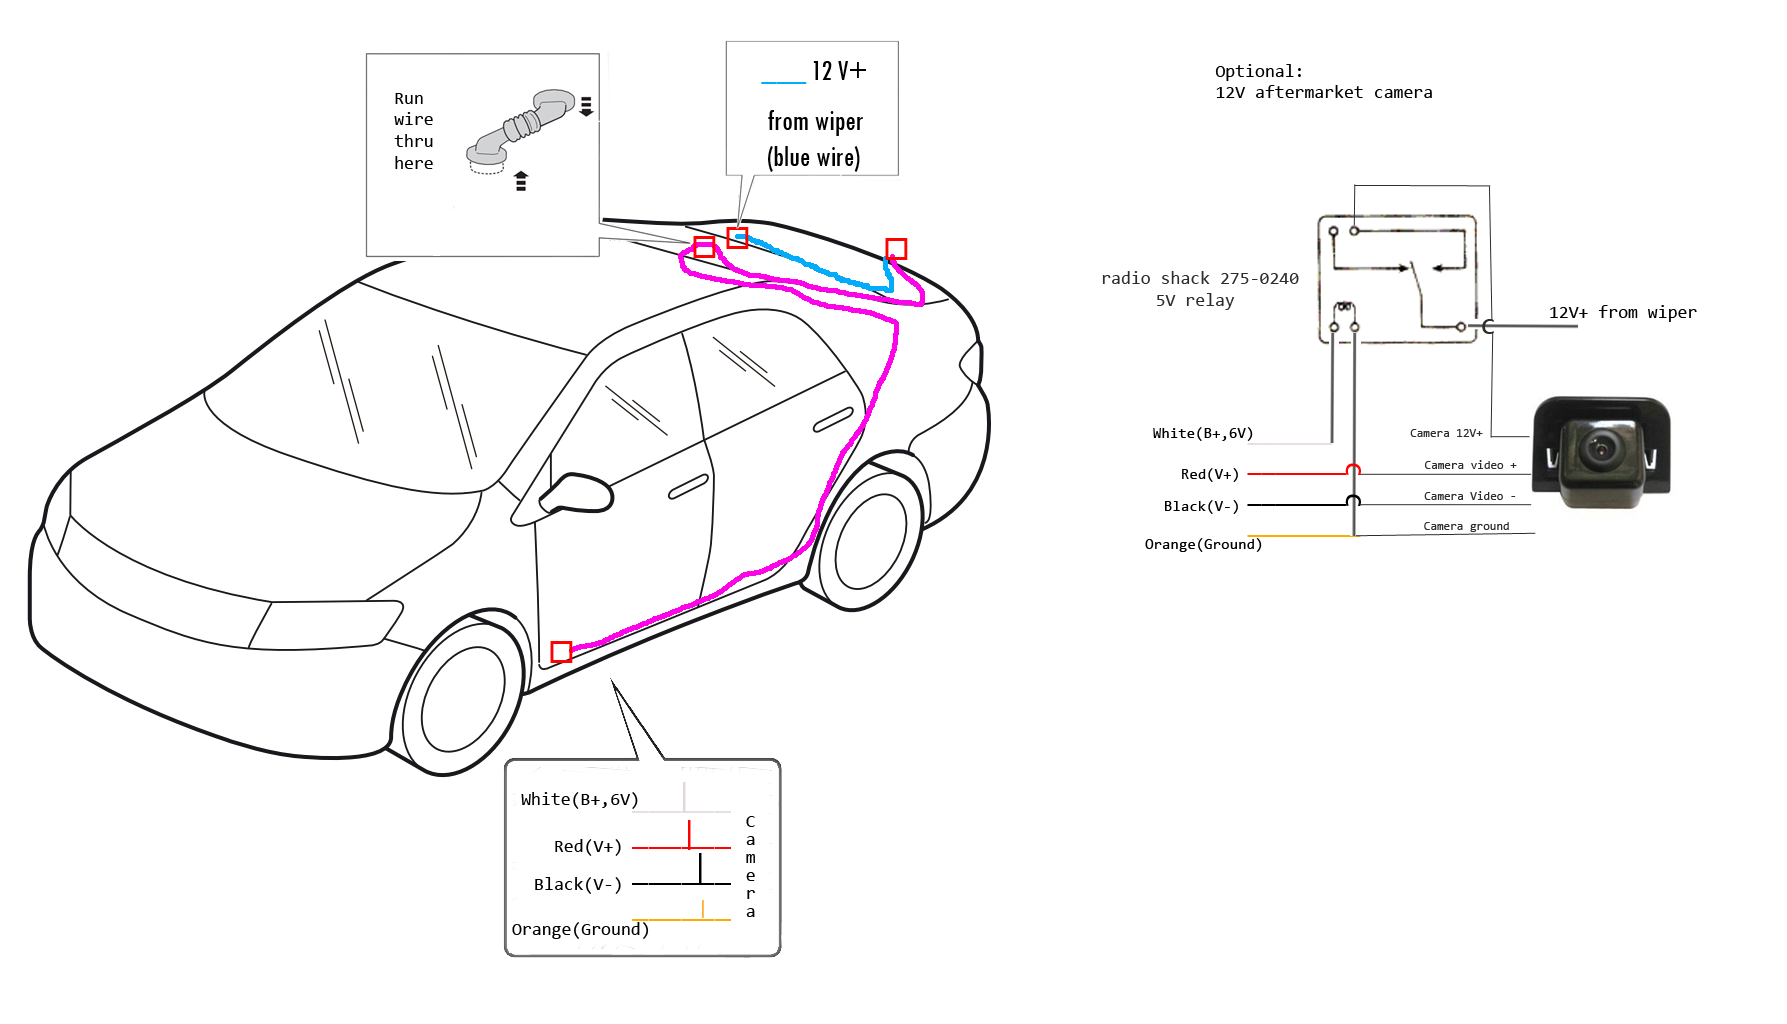 prius backup camera wiring diagram